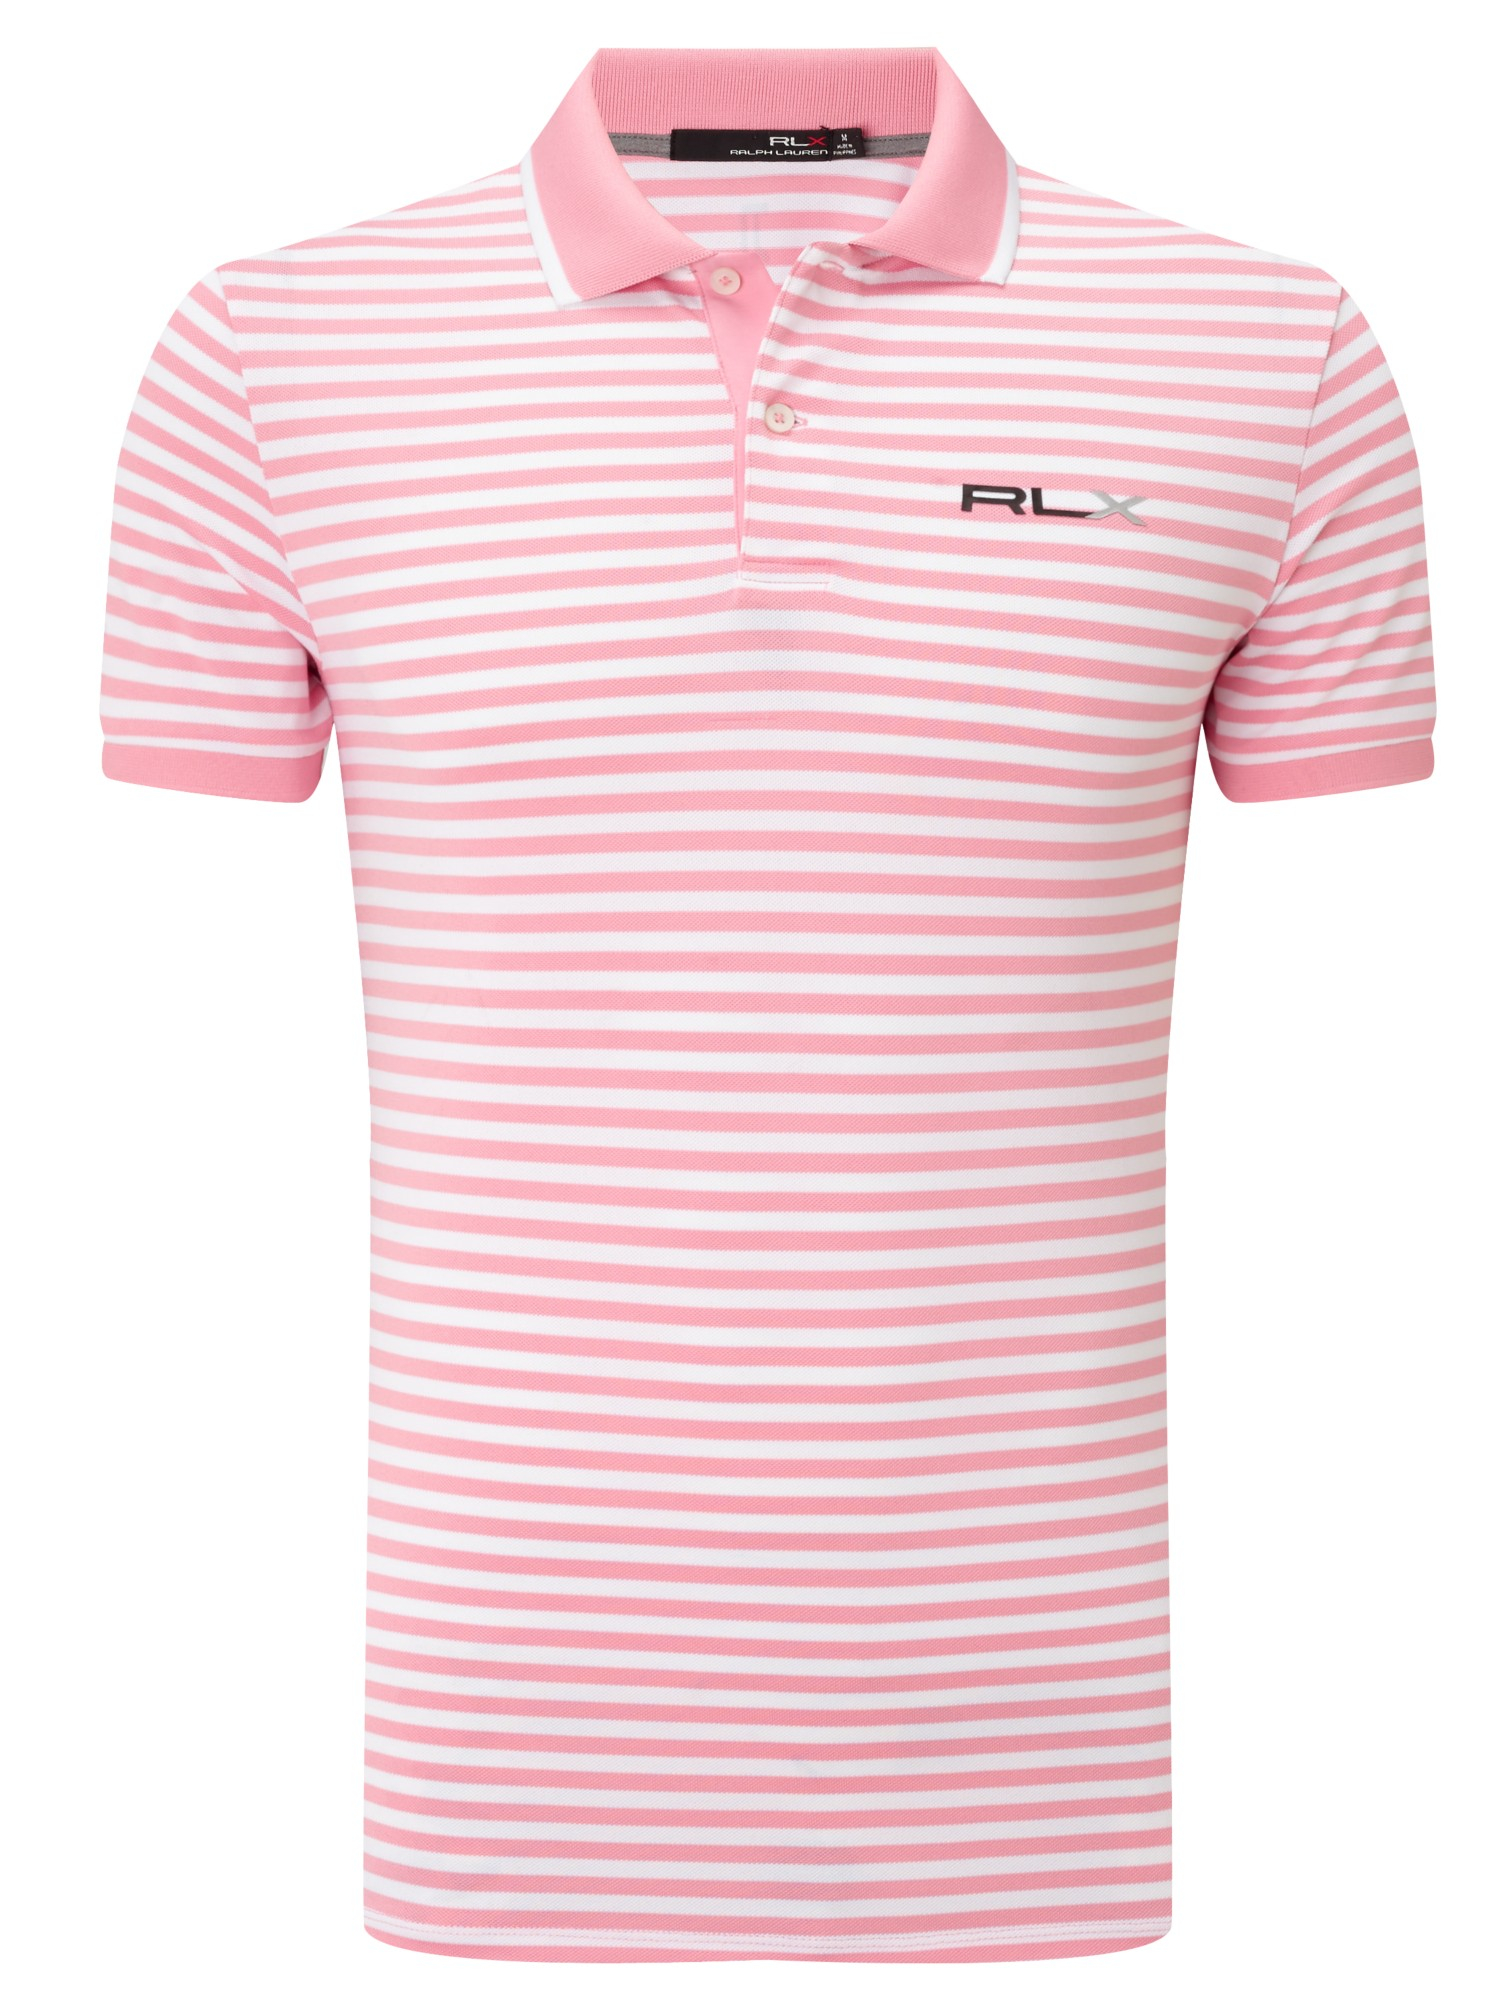 Polo Ralph Lauren US Open RLX Performance Jersey T-Shirt \u0026middot; Gallery